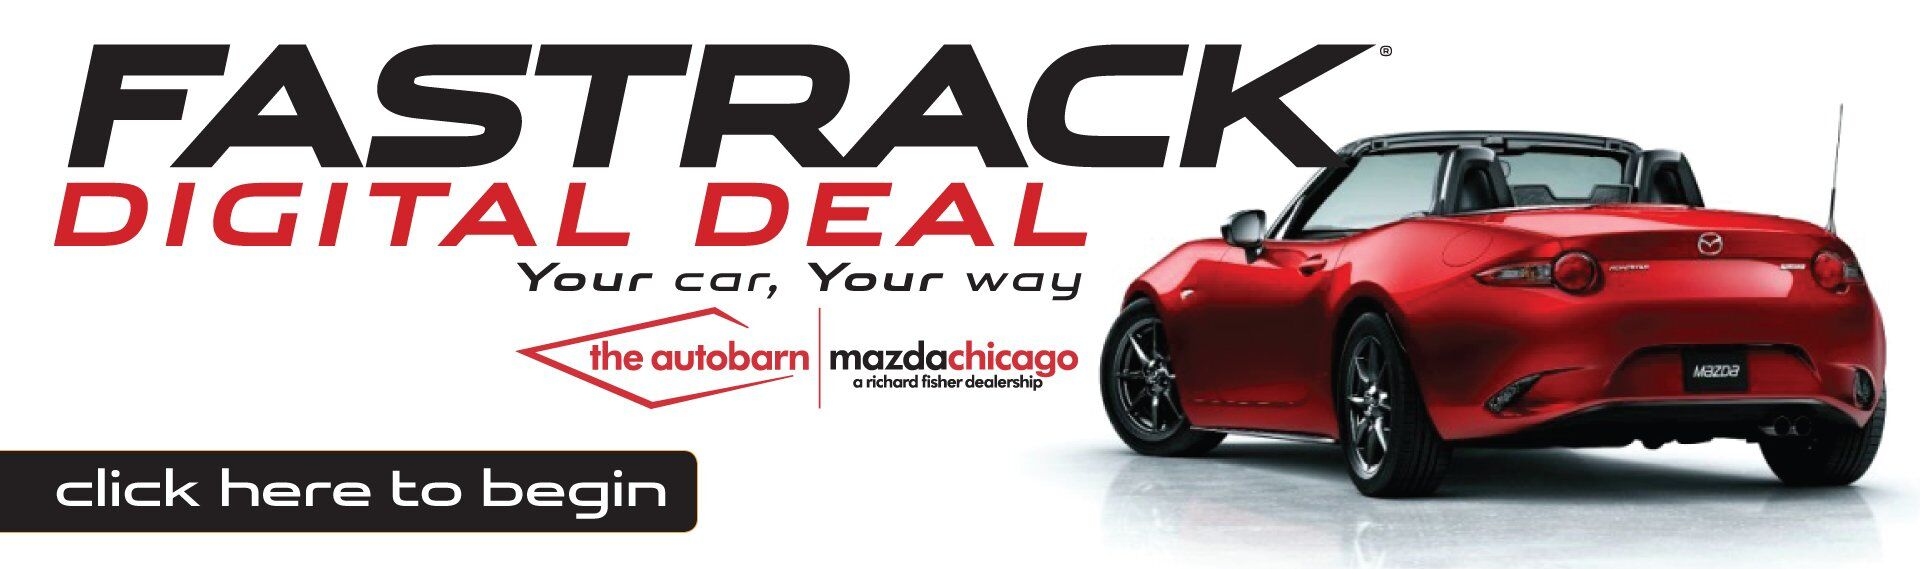 The Autobarn Fastrack Digital Deal.  Your Car Your Way